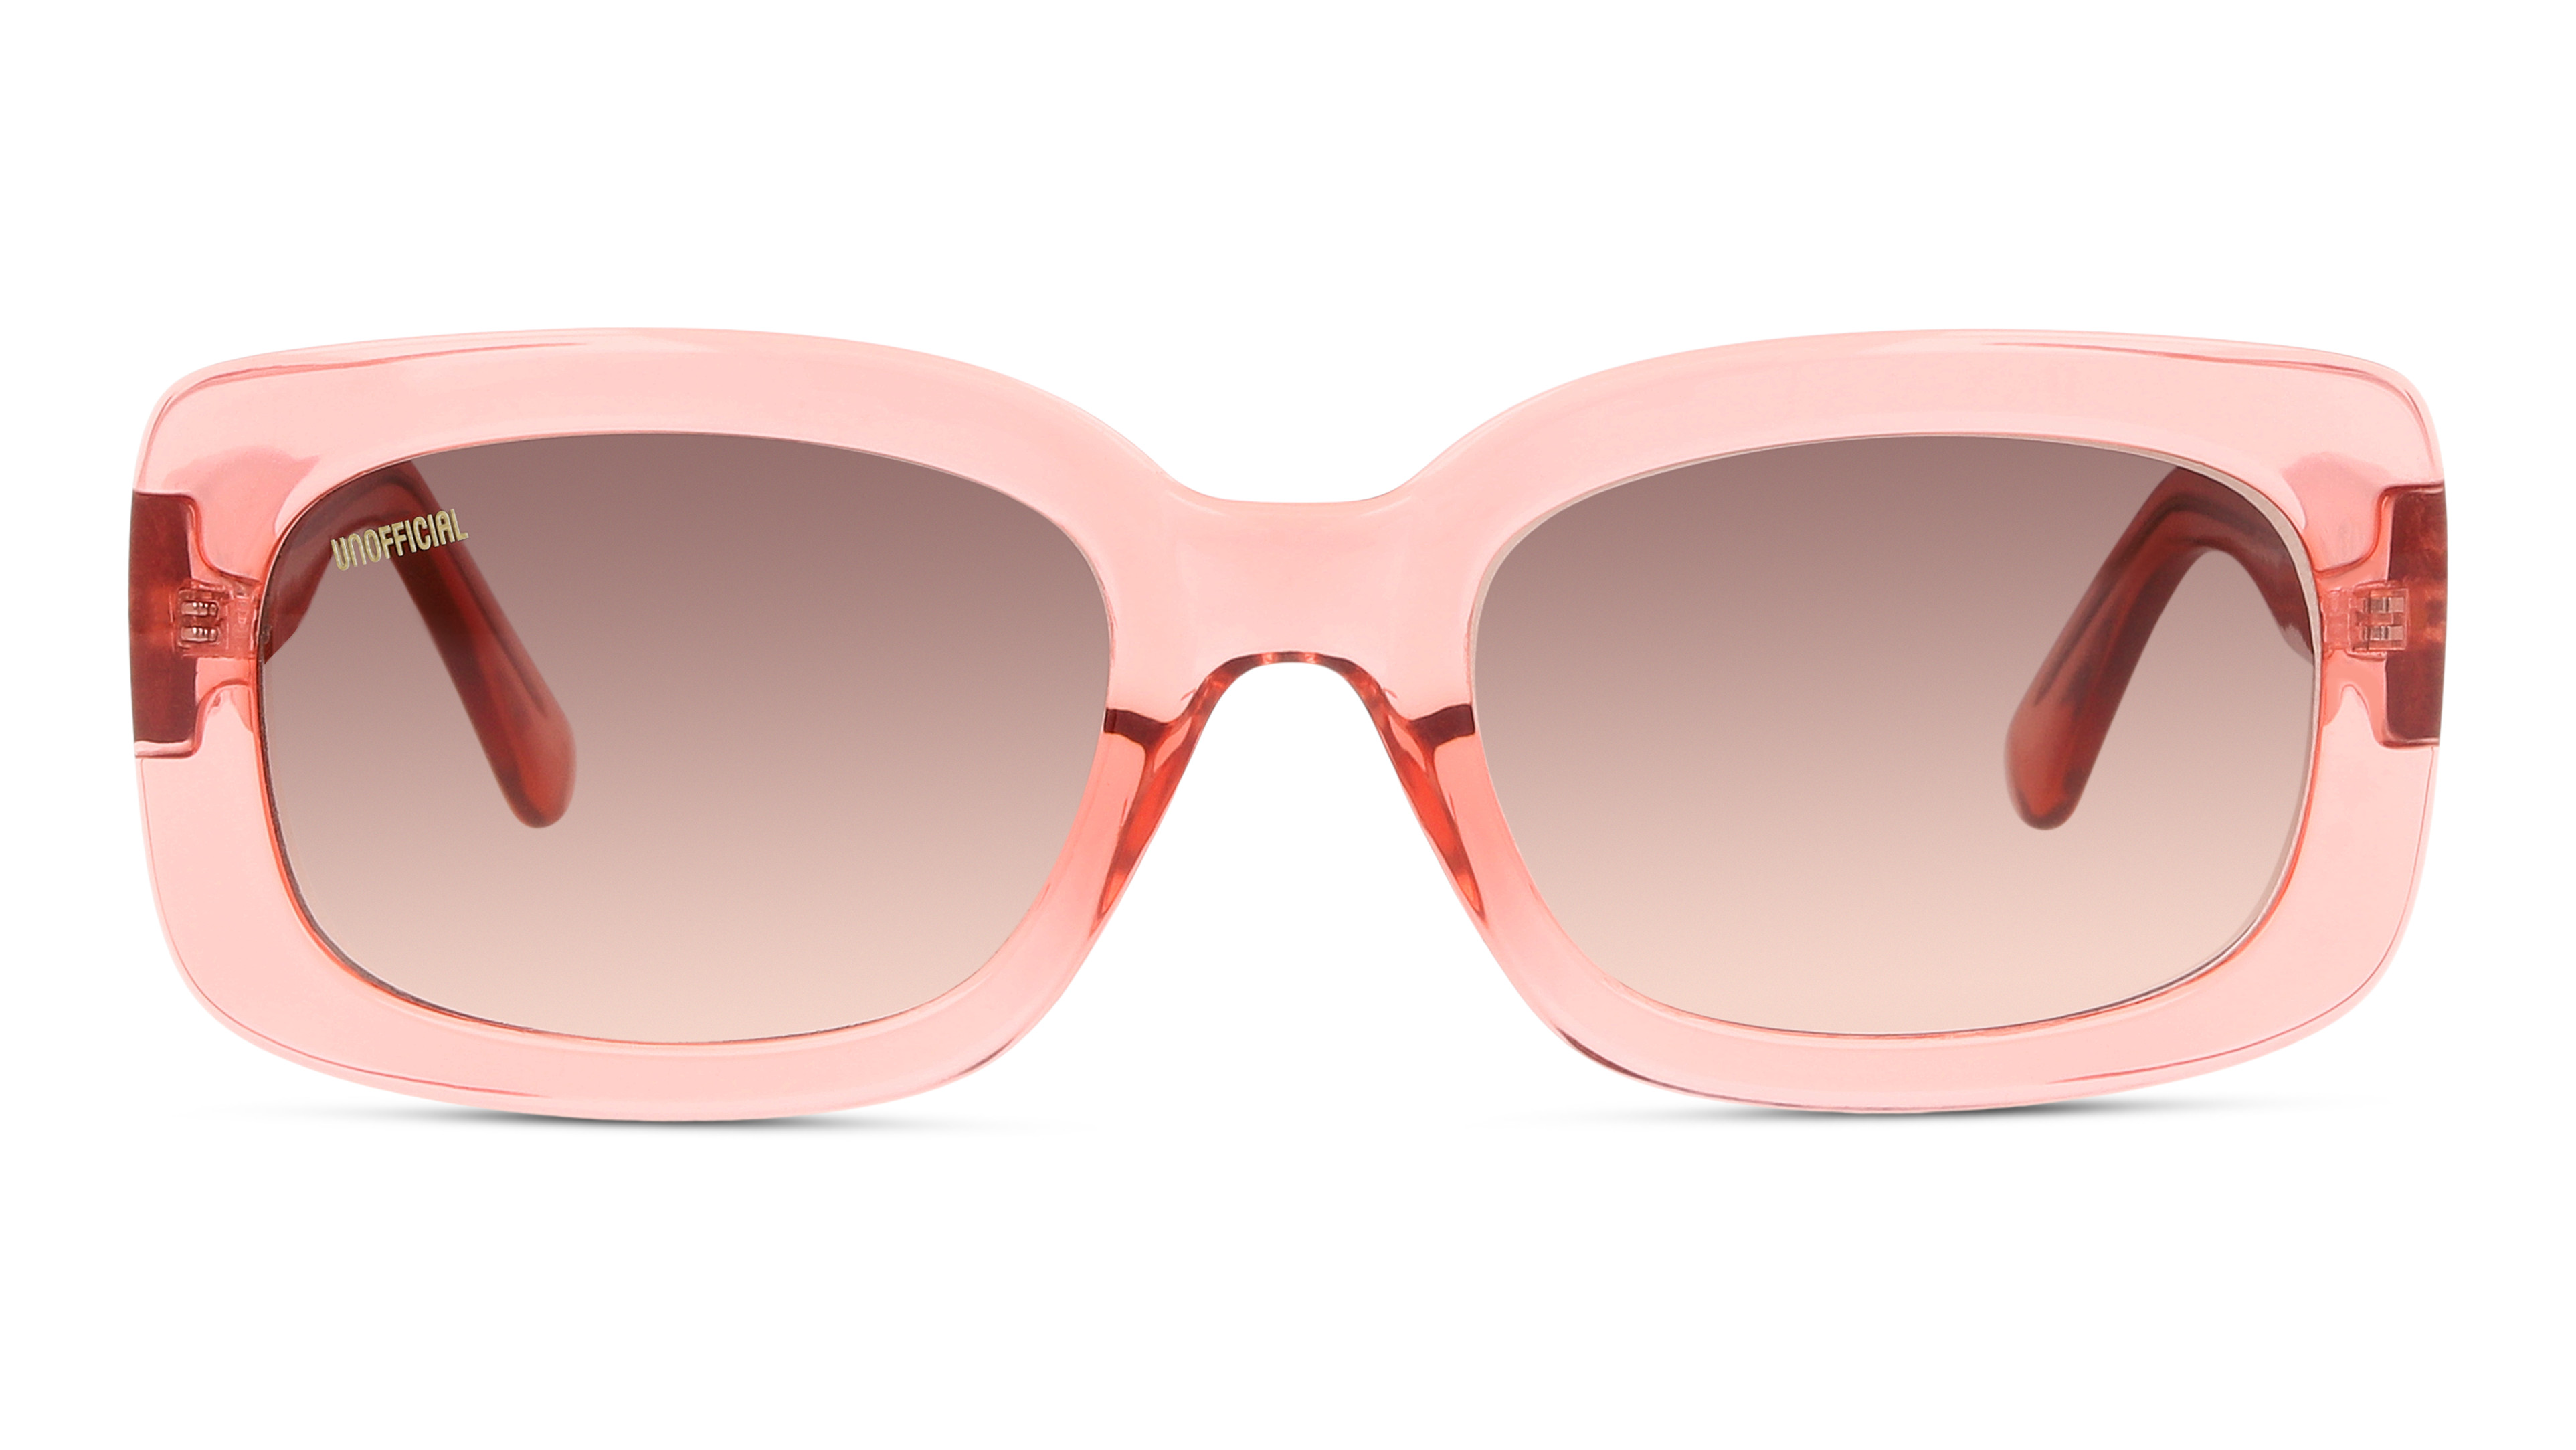 8719154741265-front-01-unofficial-unsf0032-eyewear-pink-brown